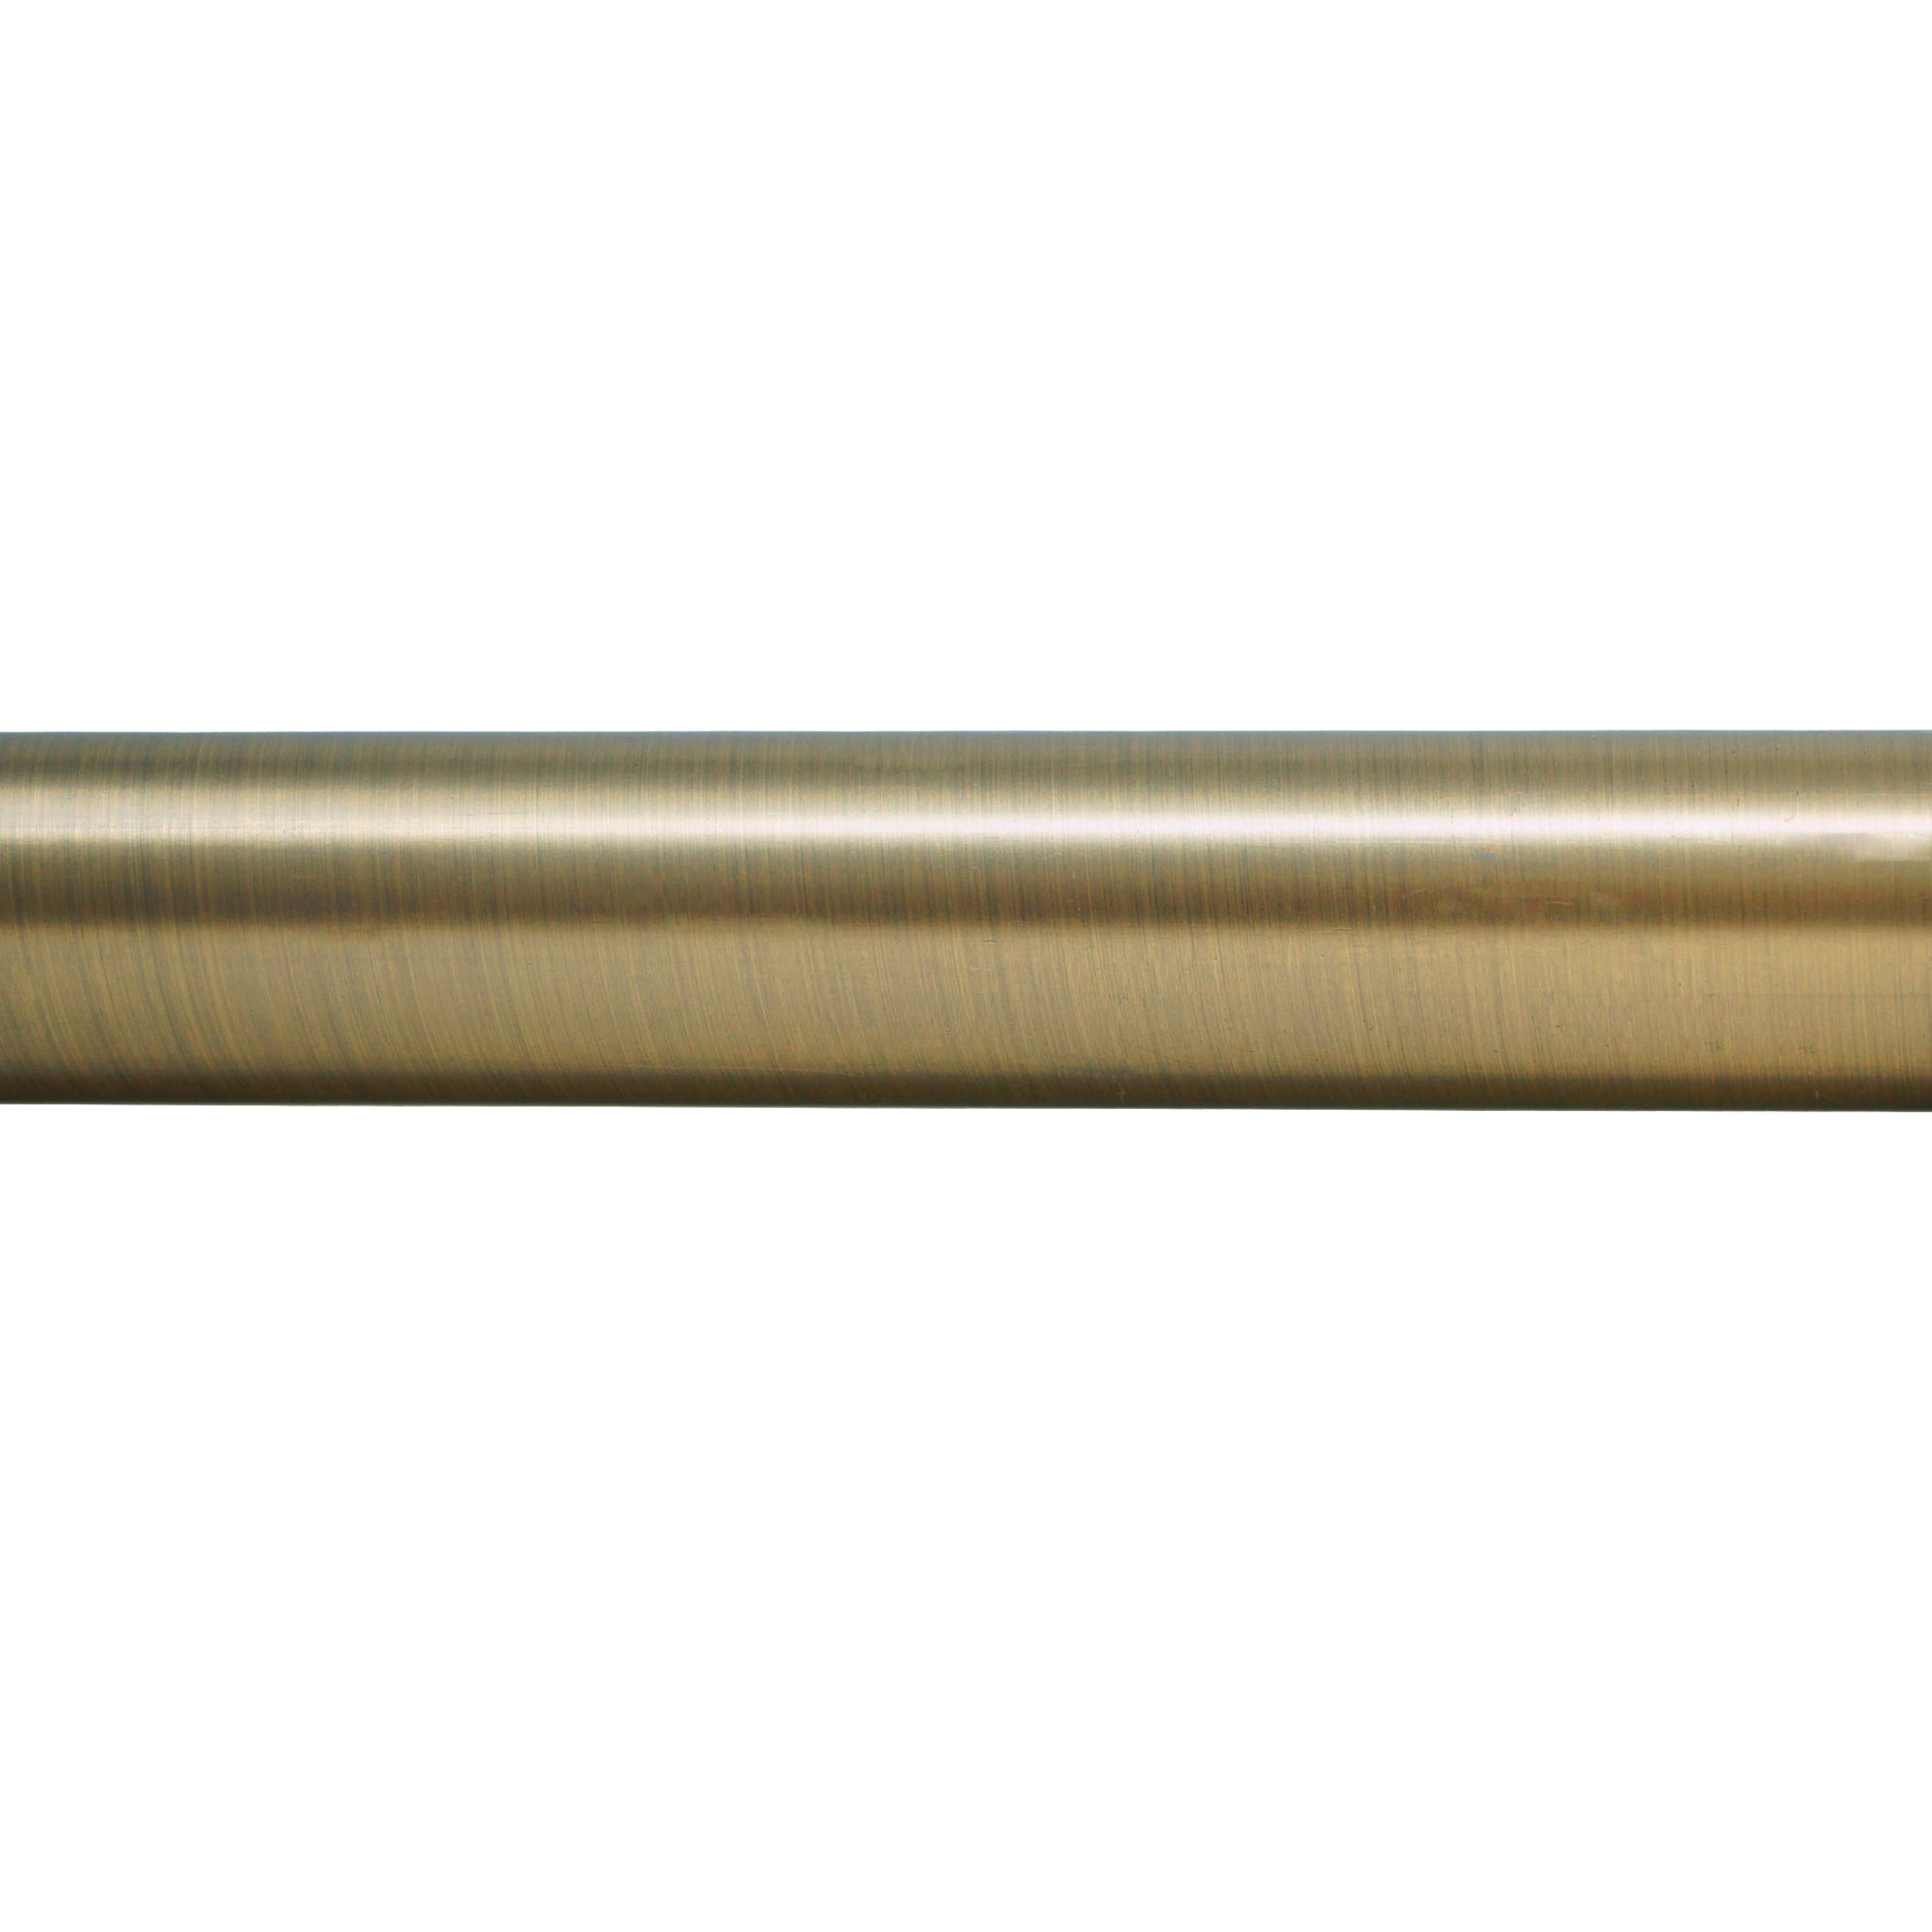 Metal Rod 8' - Antique Brass Finish